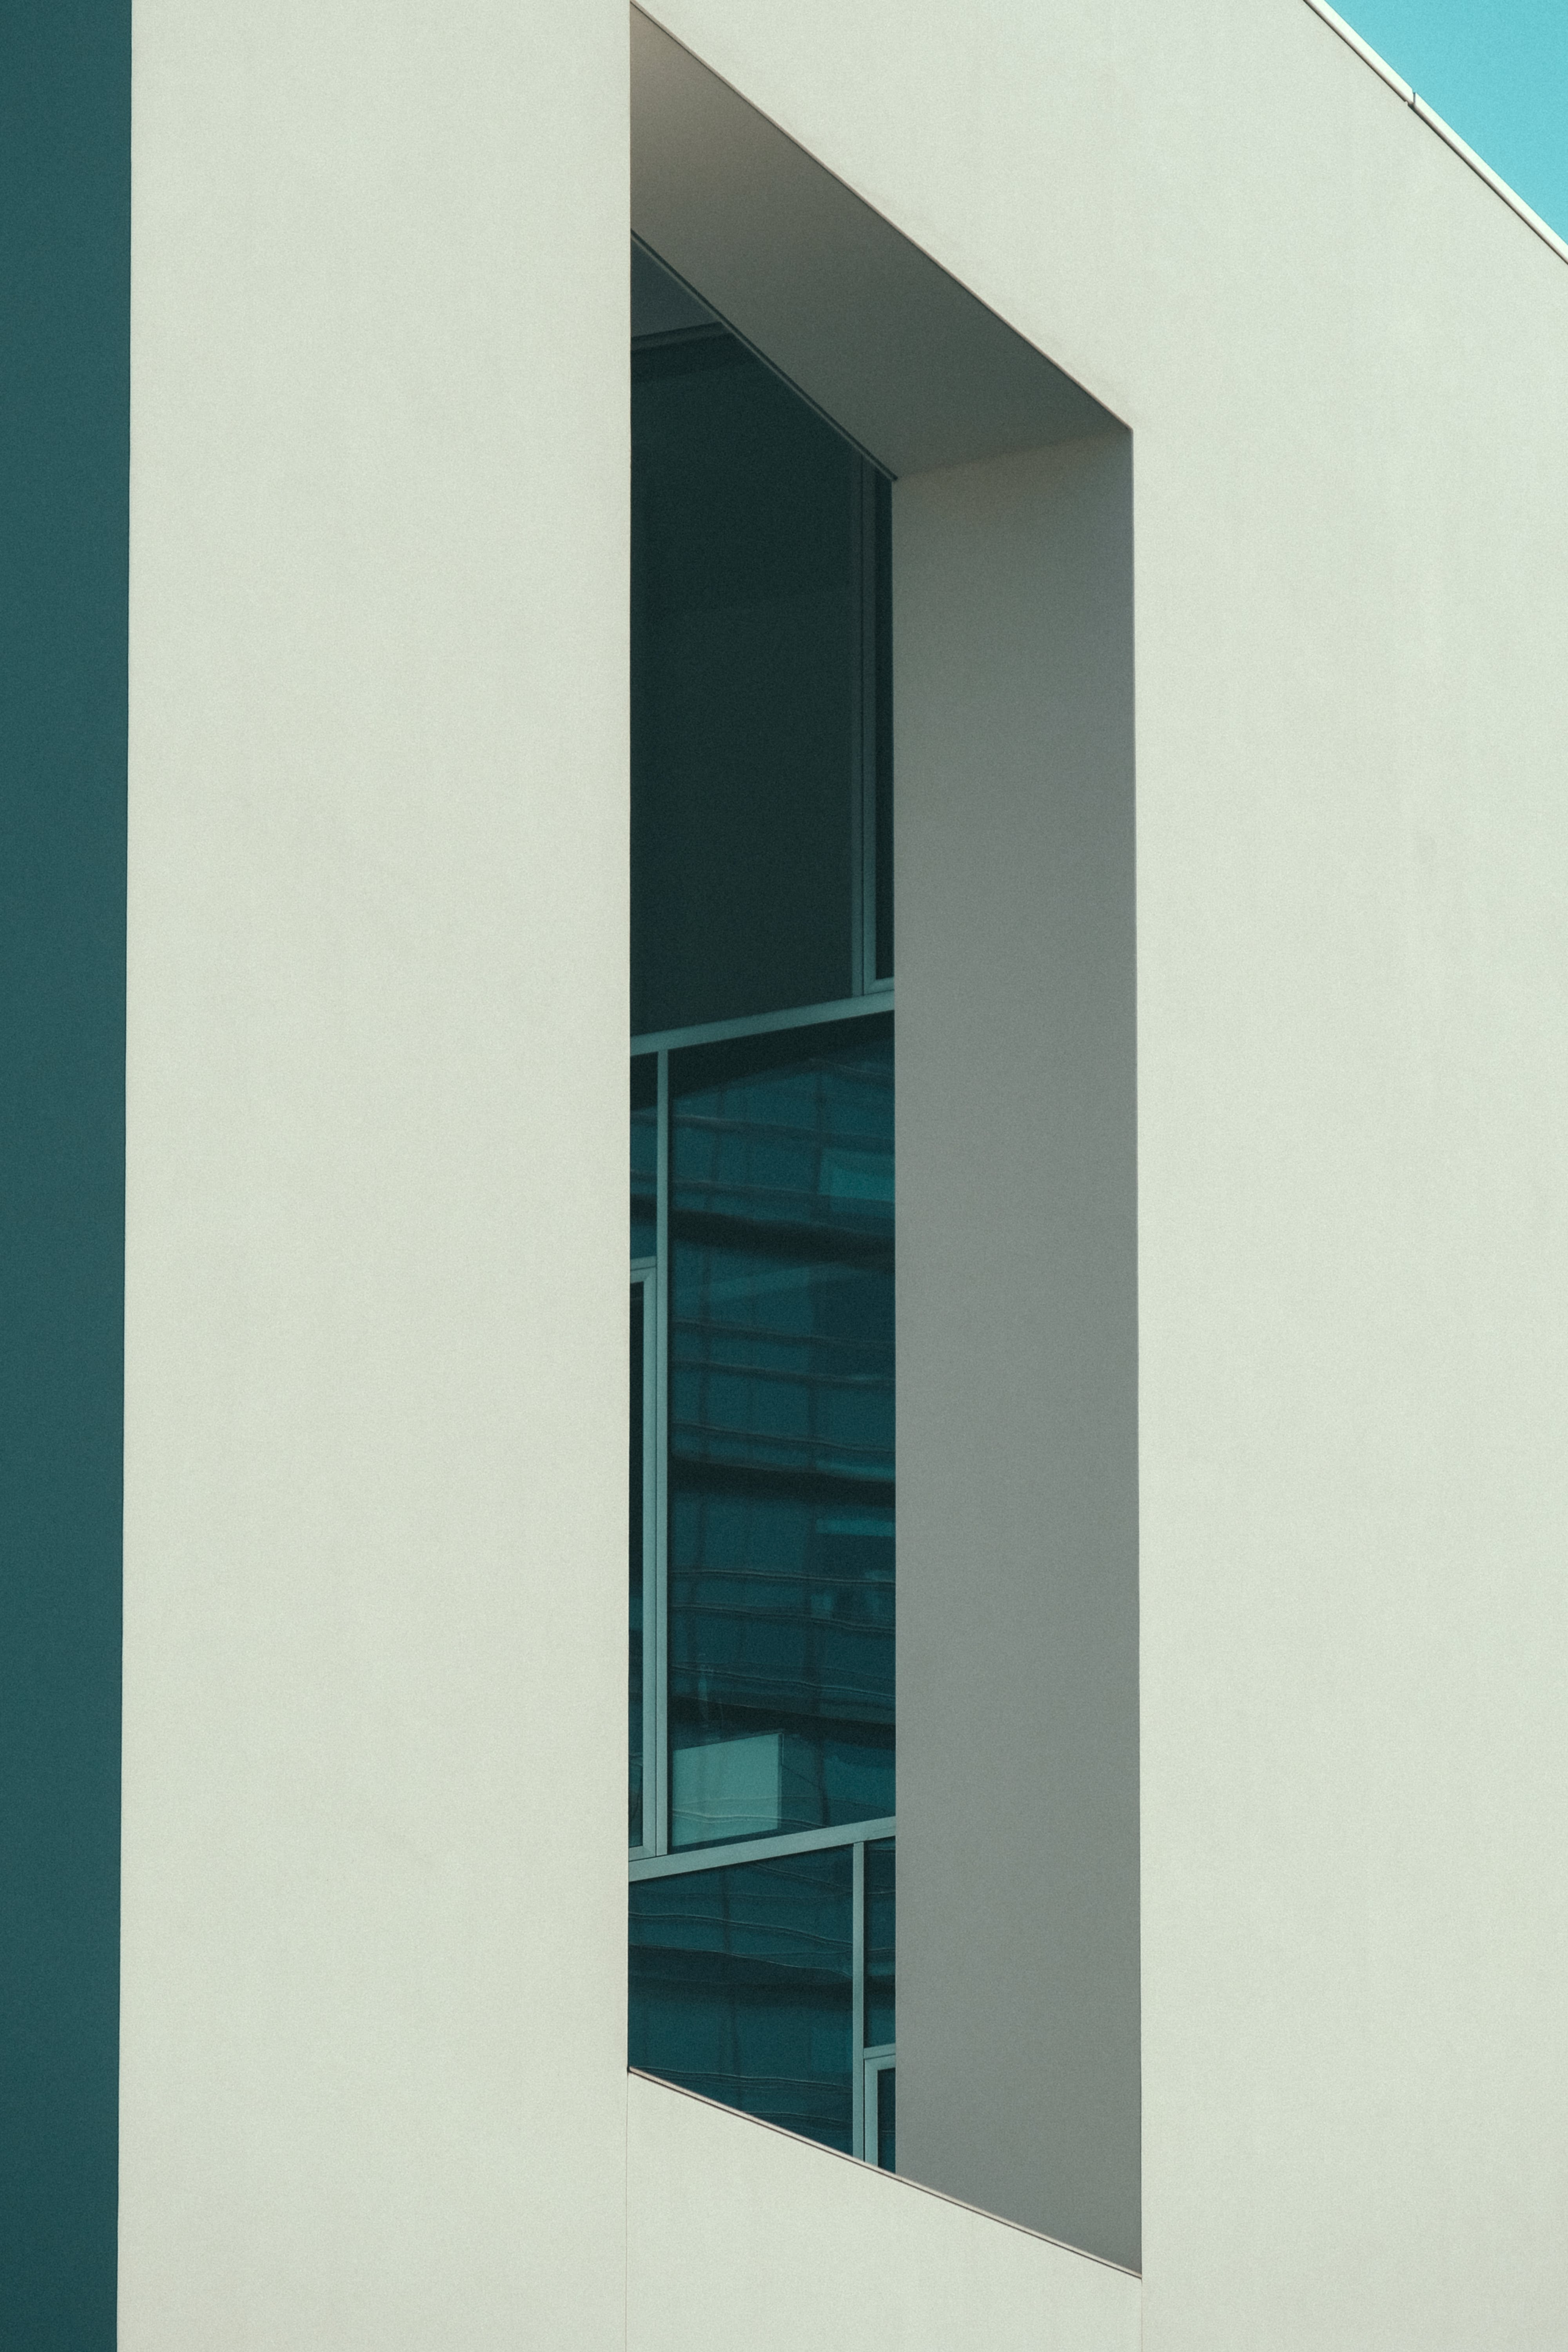 Low-angle Photography White Concrete Building Under Blue Sky